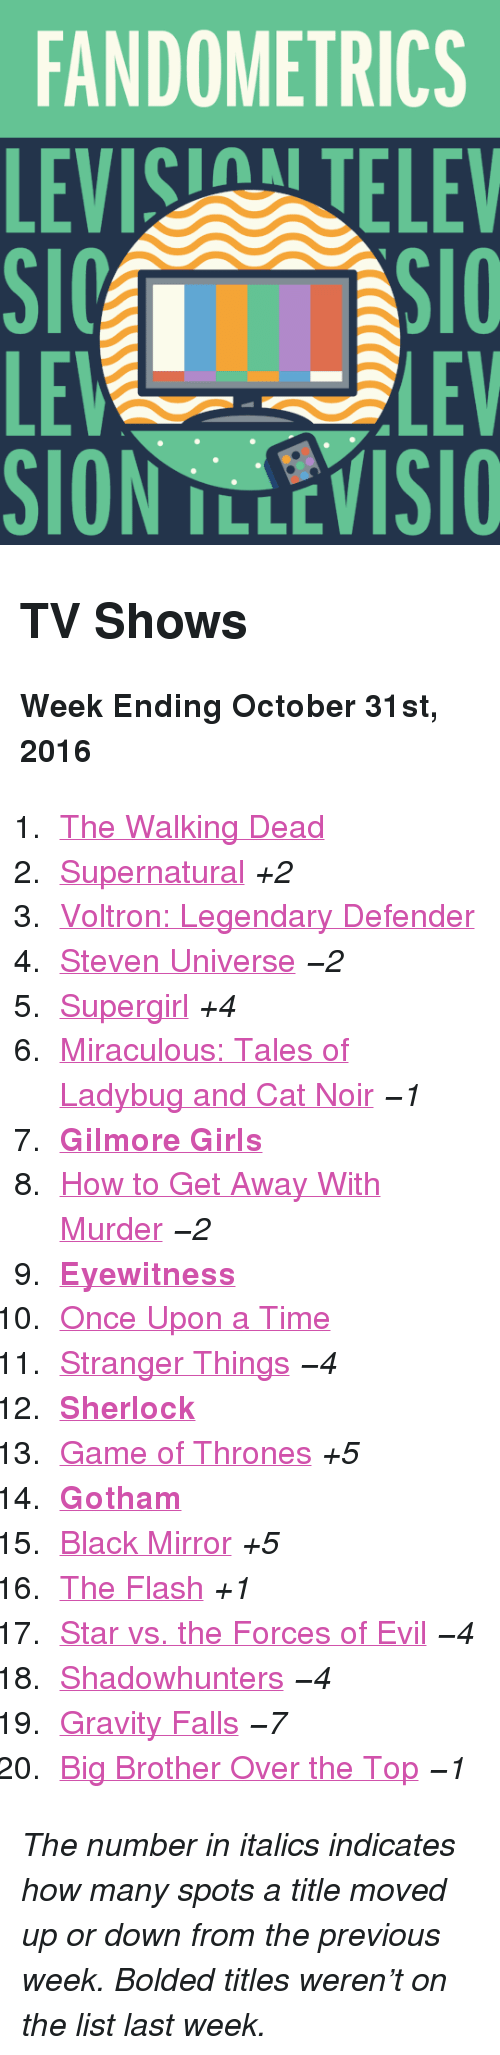 """Game of Thrones, Girls, and The Walking Dead: FANDOMETRICS  LEVIS TELEV  LE  SION TLLEVISIO  LEV <h2>TV Shows</h2><p><b>Week Ending October 31st, 2016</b></p><ol><li><a href=""""http://www.tumblr.com/search/the%20walking%20dead"""">The Walking Dead</a></li>  <li><a href=""""http://www.tumblr.com/search/supernatural"""">Supernatural</a><i>+2</i></li>  <li><a href=""""http://www.tumblr.com/search/voltron"""">Voltron: Legendary Defender</a></li>  <li><a href=""""http://www.tumblr.com/search/steven%20universe"""">Steven Universe</a><i>−2</i></li>  <li><a href=""""http://www.tumblr.com/search/supergirl"""">Supergirl</a><i>+4</i></li>  <li><a href=""""http://www.tumblr.com/search/miraculous%20ladybug"""">Miraculous: Tales of Ladybug and Cat Noir</a><i>−1</i></li>  <li><a href=""""http://www.tumblr.com/search/gilmore%20girls""""><b>Gilmore Girls</b></a></li>  <li><a href=""""http://www.tumblr.com/search/how%20to%20get%20away%20with%20murder"""">How to Get Away With Murder</a><i>−2</i></li>  <li><a href=""""http://www.tumblr.com/search/eyewitness""""><b>Eyewitness</b></a></li>  <li><a href=""""http://www.tumblr.com/search/ouat"""">Once Upon a Time</a></li>  <li><a href=""""http://www.tumblr.com/search/stranger%20things"""">Stranger Things</a><i>−4</i></li>  <li><a href=""""http://www.tumblr.com/search/sherlock""""><b>Sherlock</b></a></li>  <li><a href=""""http://www.tumblr.com/search/game%20of%20thrones"""">Game of Thrones</a><i>+5</i></li>  <li><a href=""""http://www.tumblr.com/search/gotham""""><b>Gotham</b></a></li>  <li><a href=""""http://www.tumblr.com/search/black%20mirror"""">Black Mirror</a><i>+5</i></li>  <li><a href=""""http://www.tumblr.com/search/the%20flash"""">The Flash</a><i>+1</i></li>  <li><a href=""""http://www.tumblr.com/search/star%20vs%20the%20forces%20of%20evil"""">Star vs. the Forces of Evil</a><i>−4</i></li>  <li><a href=""""http://www.tumblr.com/search/shadowhunters"""">Shadowhunters</a><i>−4</i></li>  <li><a href=""""http://www.tumblr.com/search/gravity%20falls"""">Gravity Falls</a><i>−7</i></li>  <li><a href=""""http://www.tumblr.com/search/bbott"""">Big Brother Ov"""